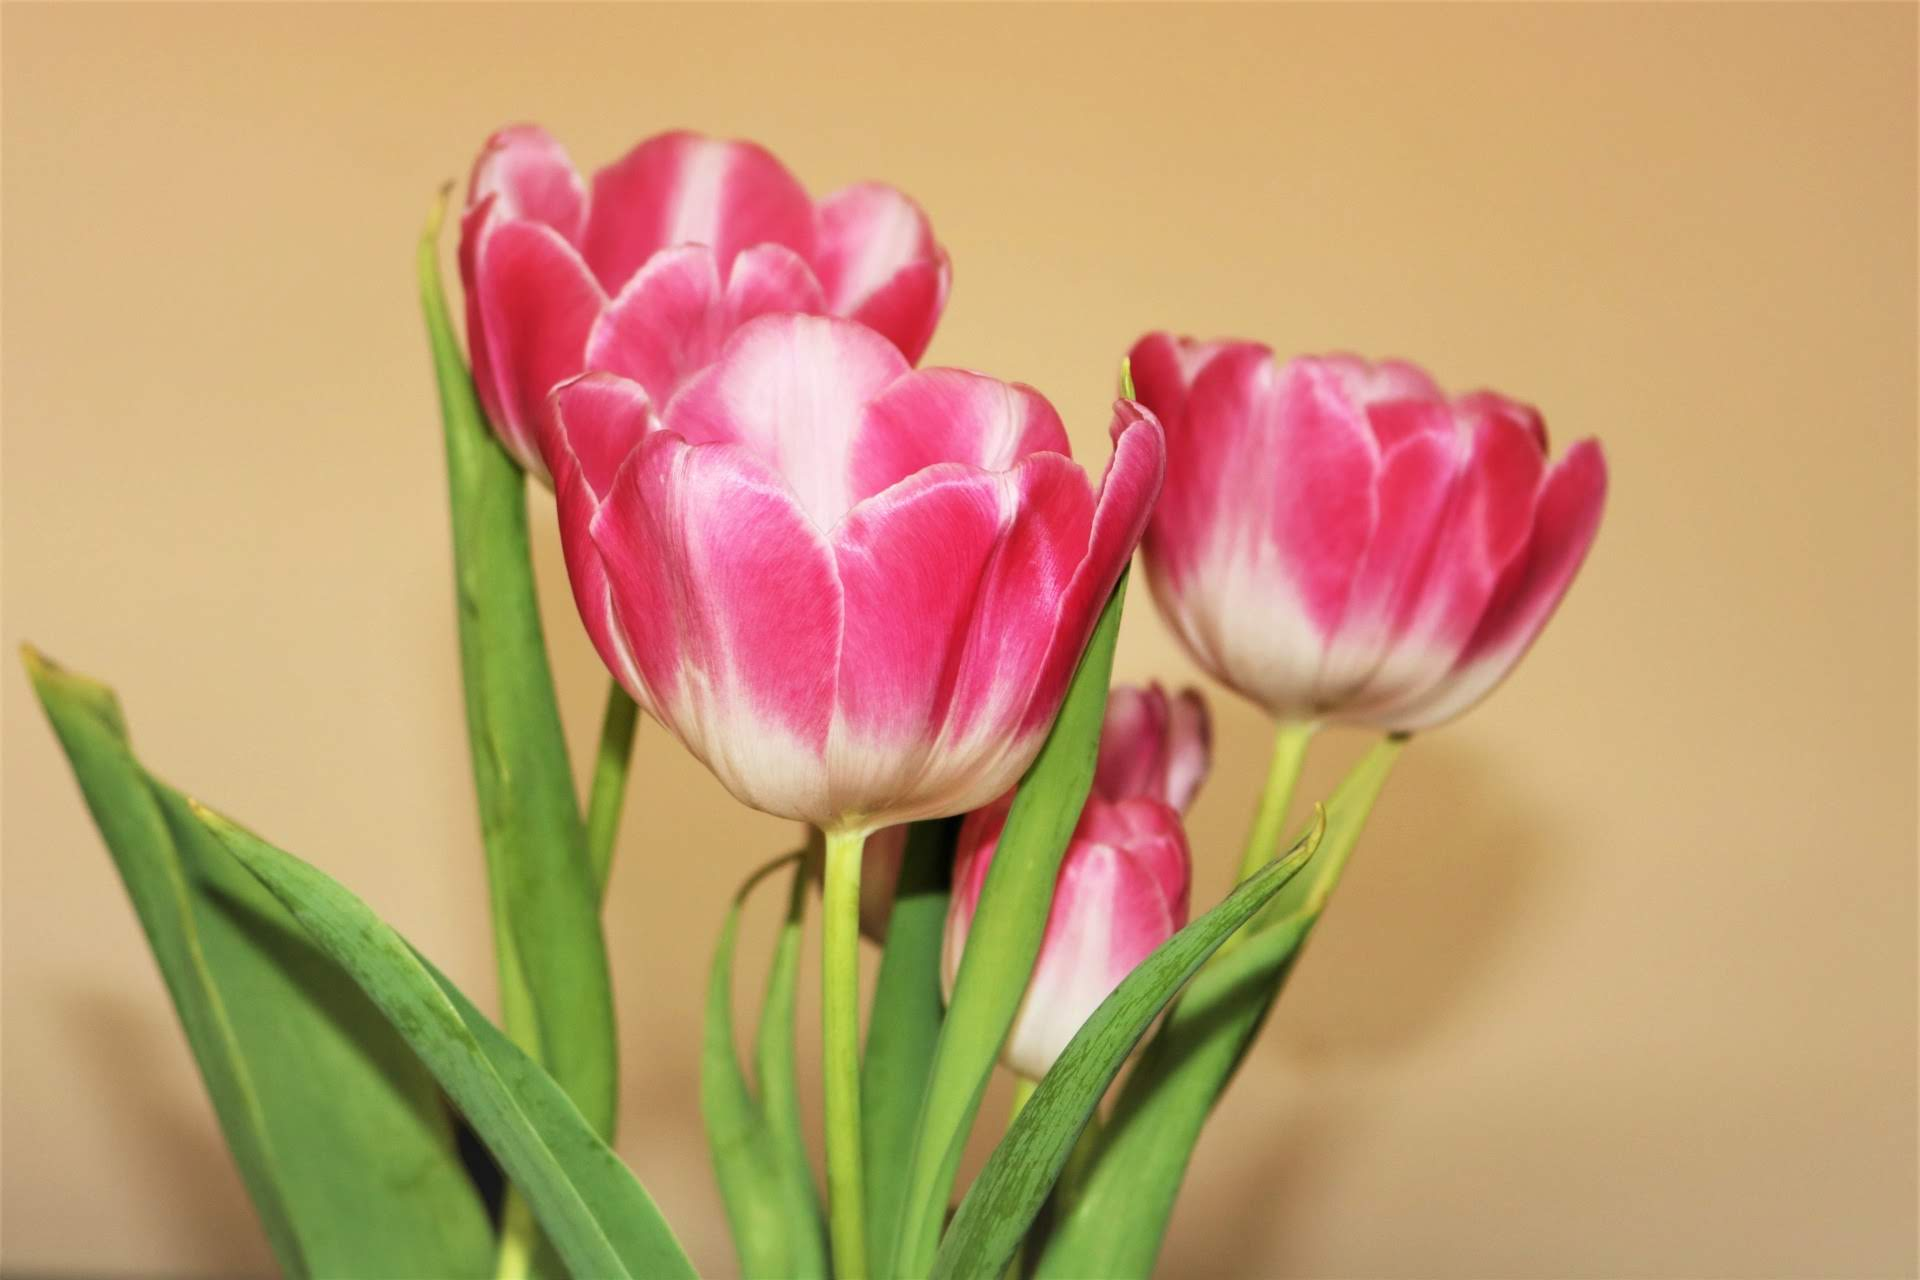 pink-and-white-tulips-on-yellow